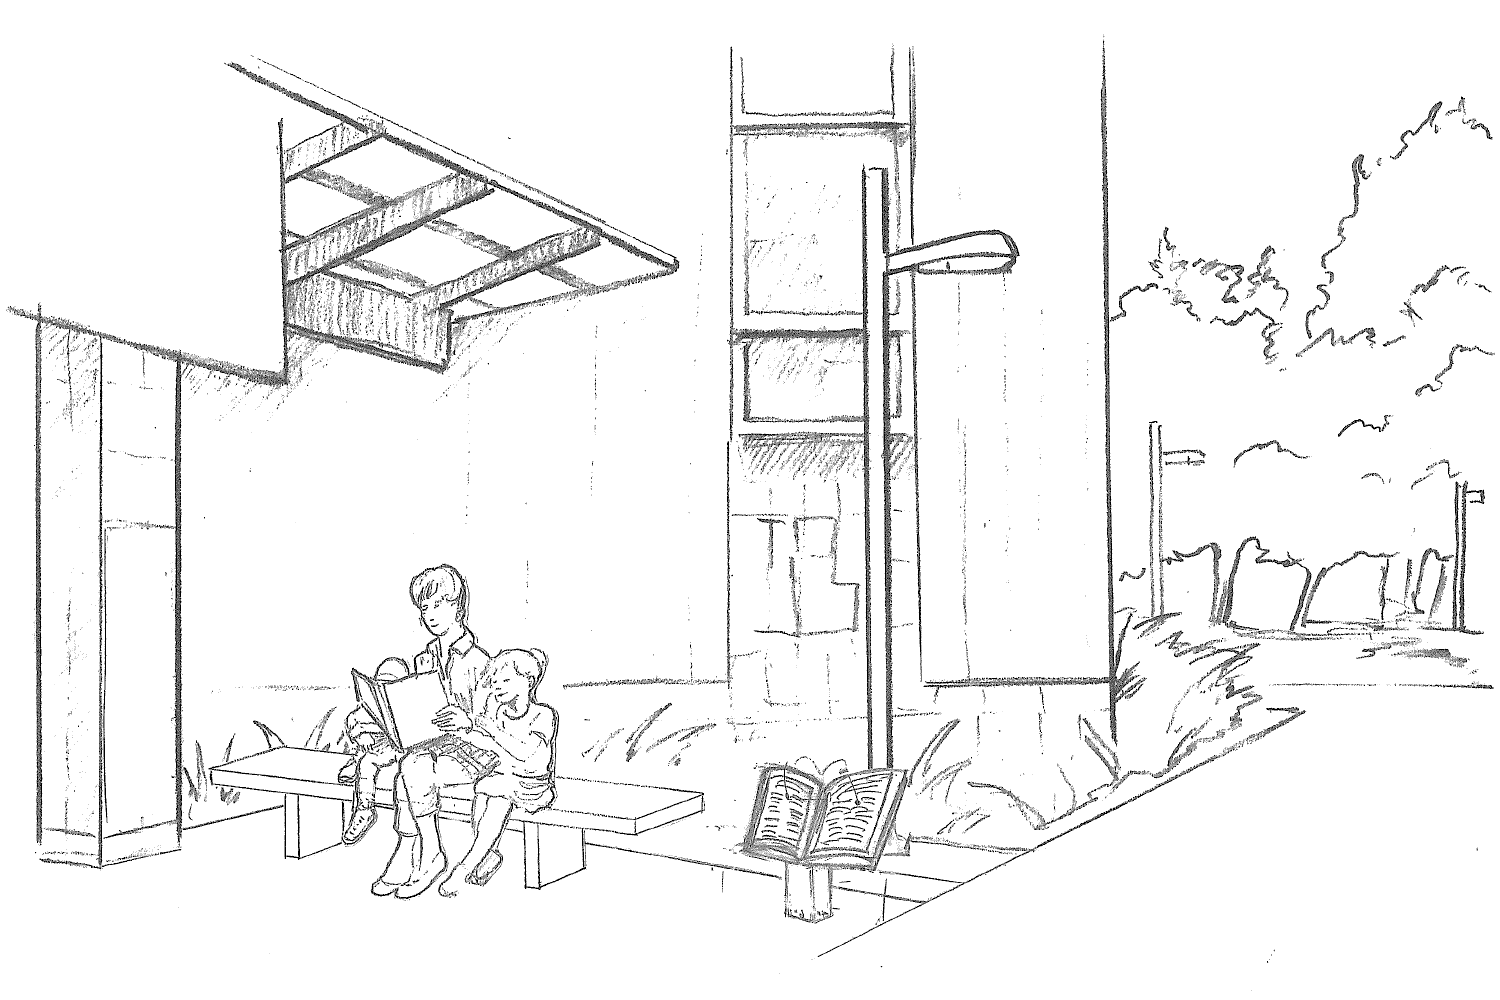 Sketch of Pat Dando Plaza with Statue and Plaque